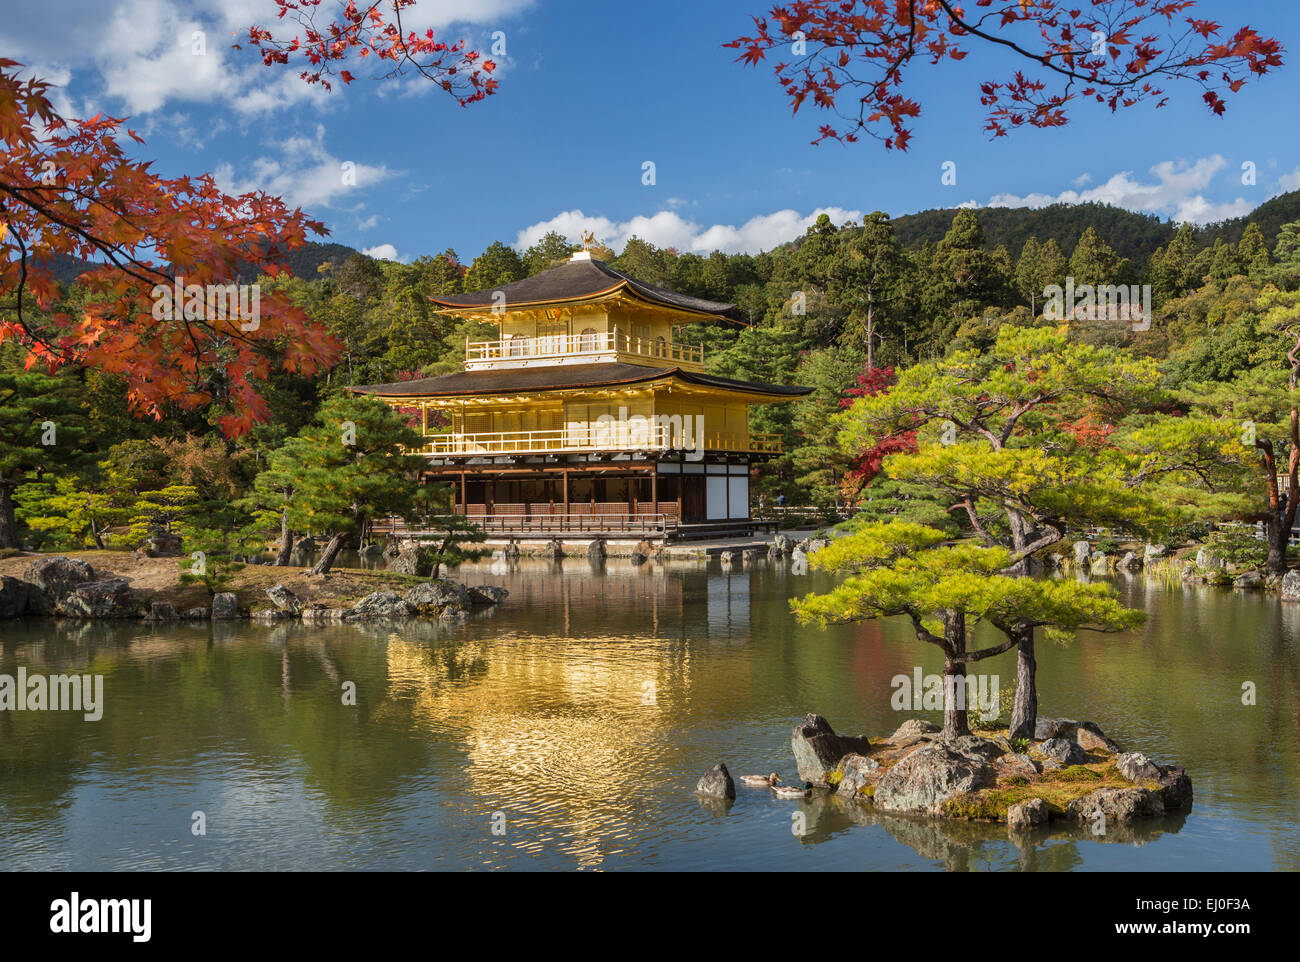 World Heritage, Japan, Asia, Kansai, Kinkaku Ji, Kyoto, Landscape, Temple,  Architecture, Colourful, Fall, Famous, Gold, Golden, M